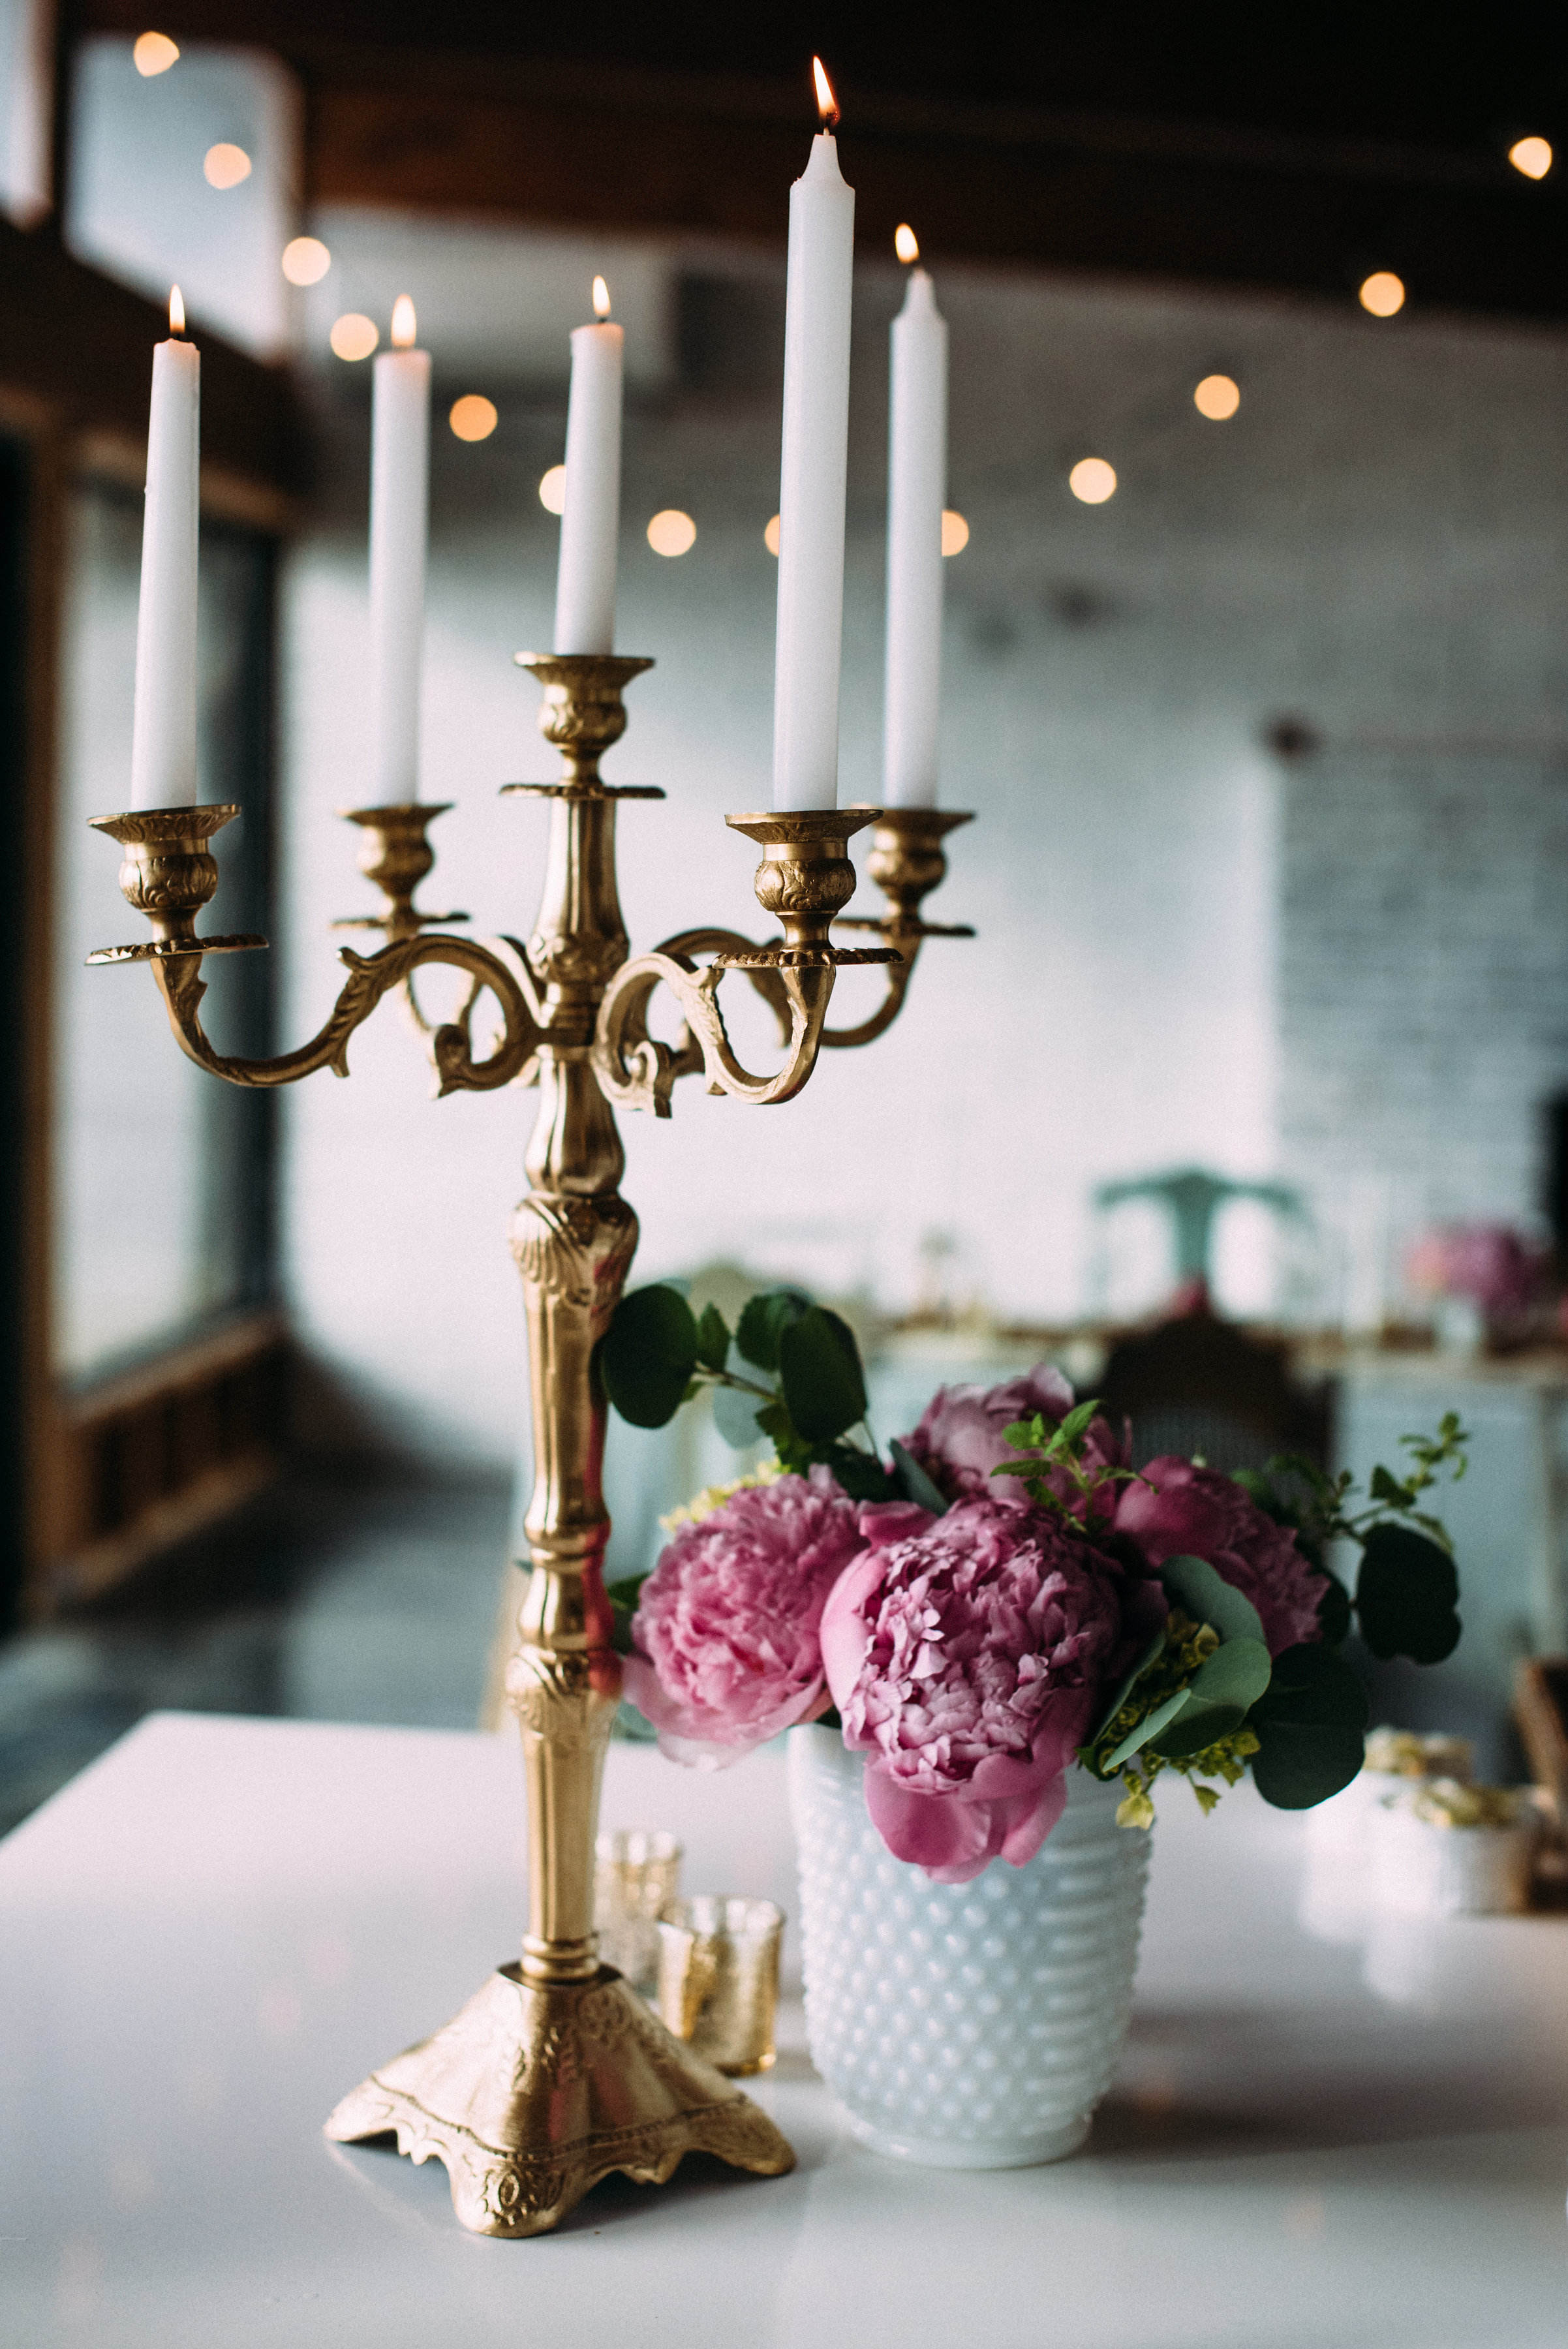 These candelabras from Unique & Chic are amazing!